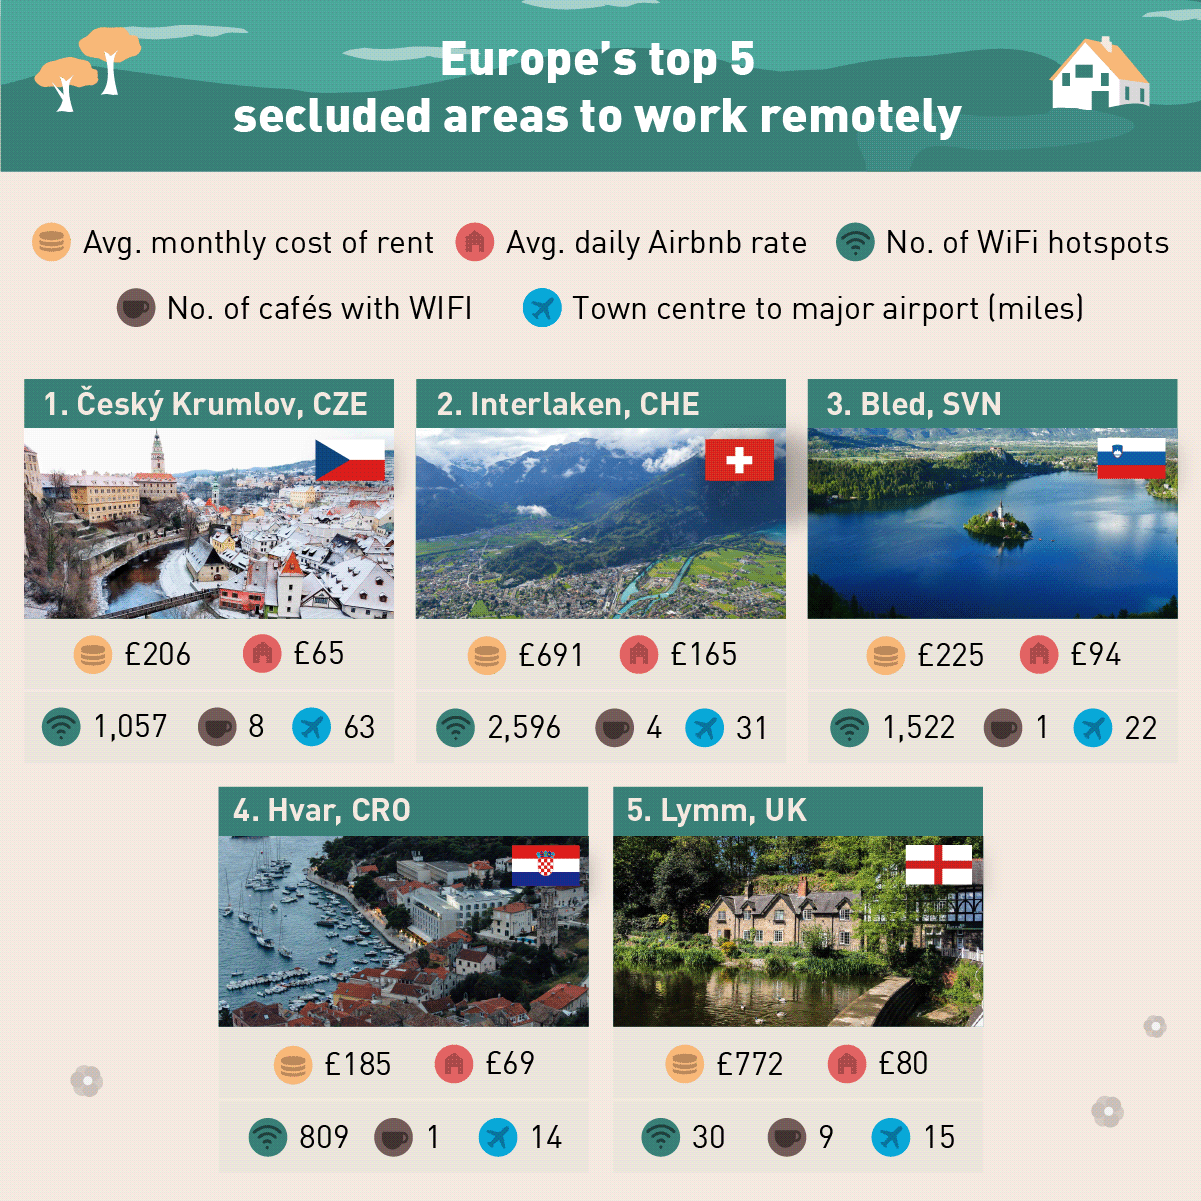 Most Secluded Areas in Europe